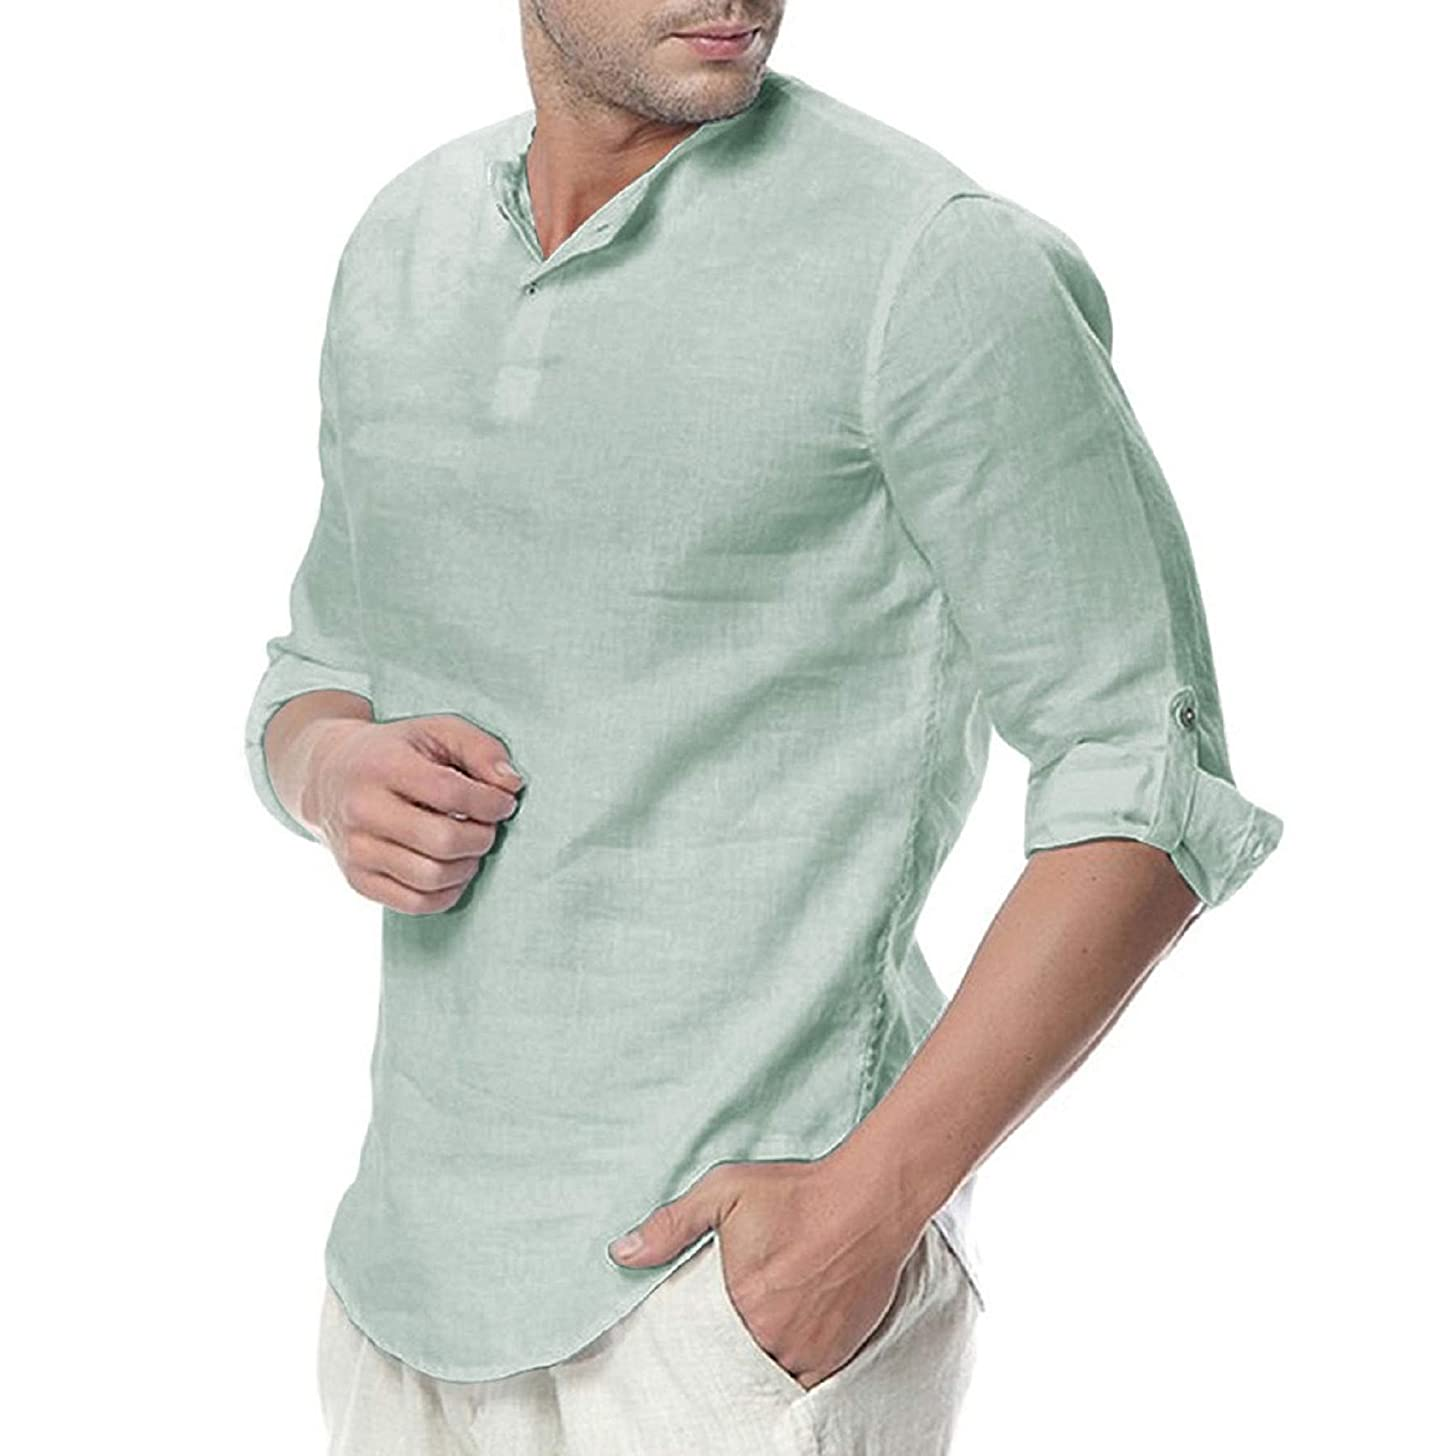 baskuwish Mens Linen T-Shirt,Males Summer Button Three Quarter Sleeve Solid Color Loose Casual Tops